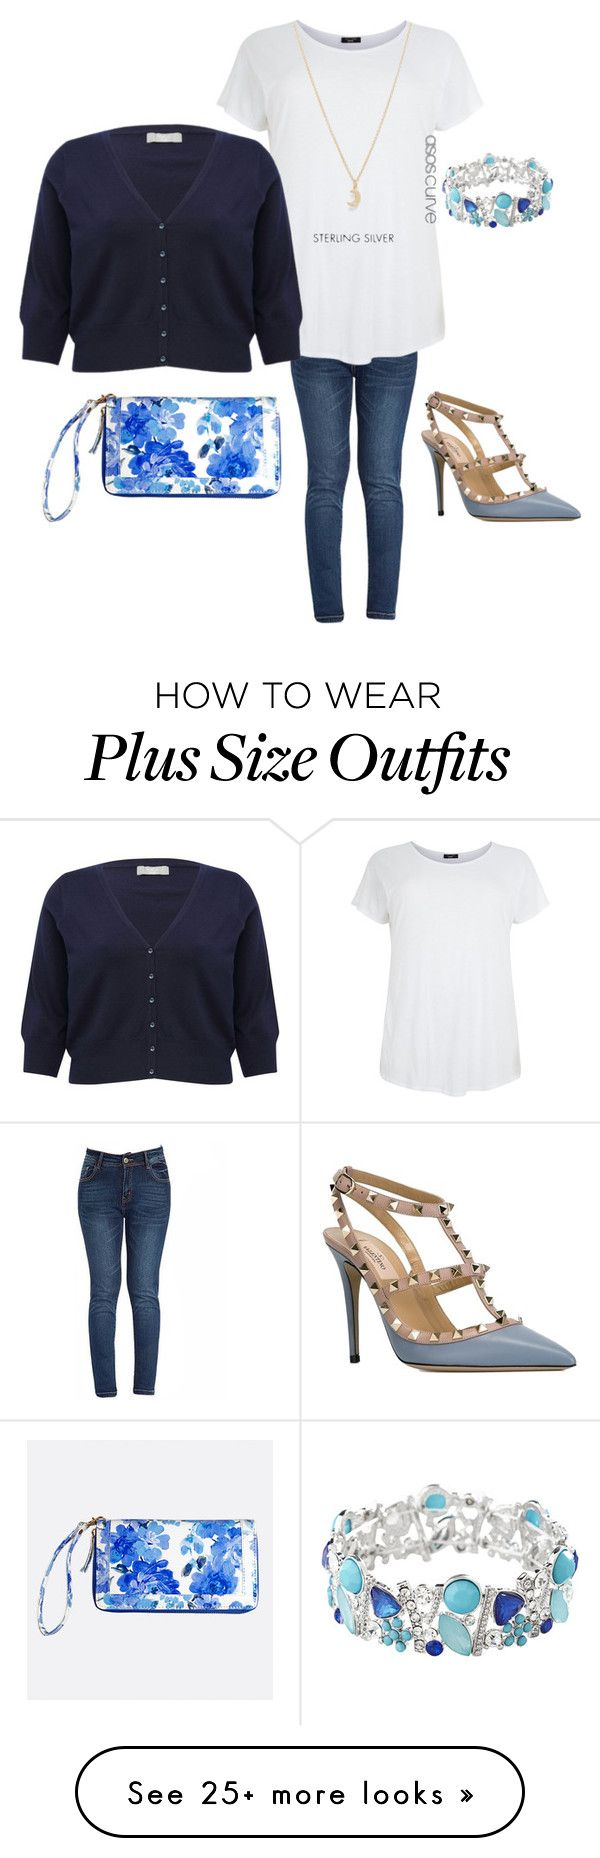 """""""Casual Work Day"""" by abloomi on Polyvore featuring Avenue, Valentino, M&Co, ASOS Curve, women's clothing, women, female, woman, misses and juniors"""